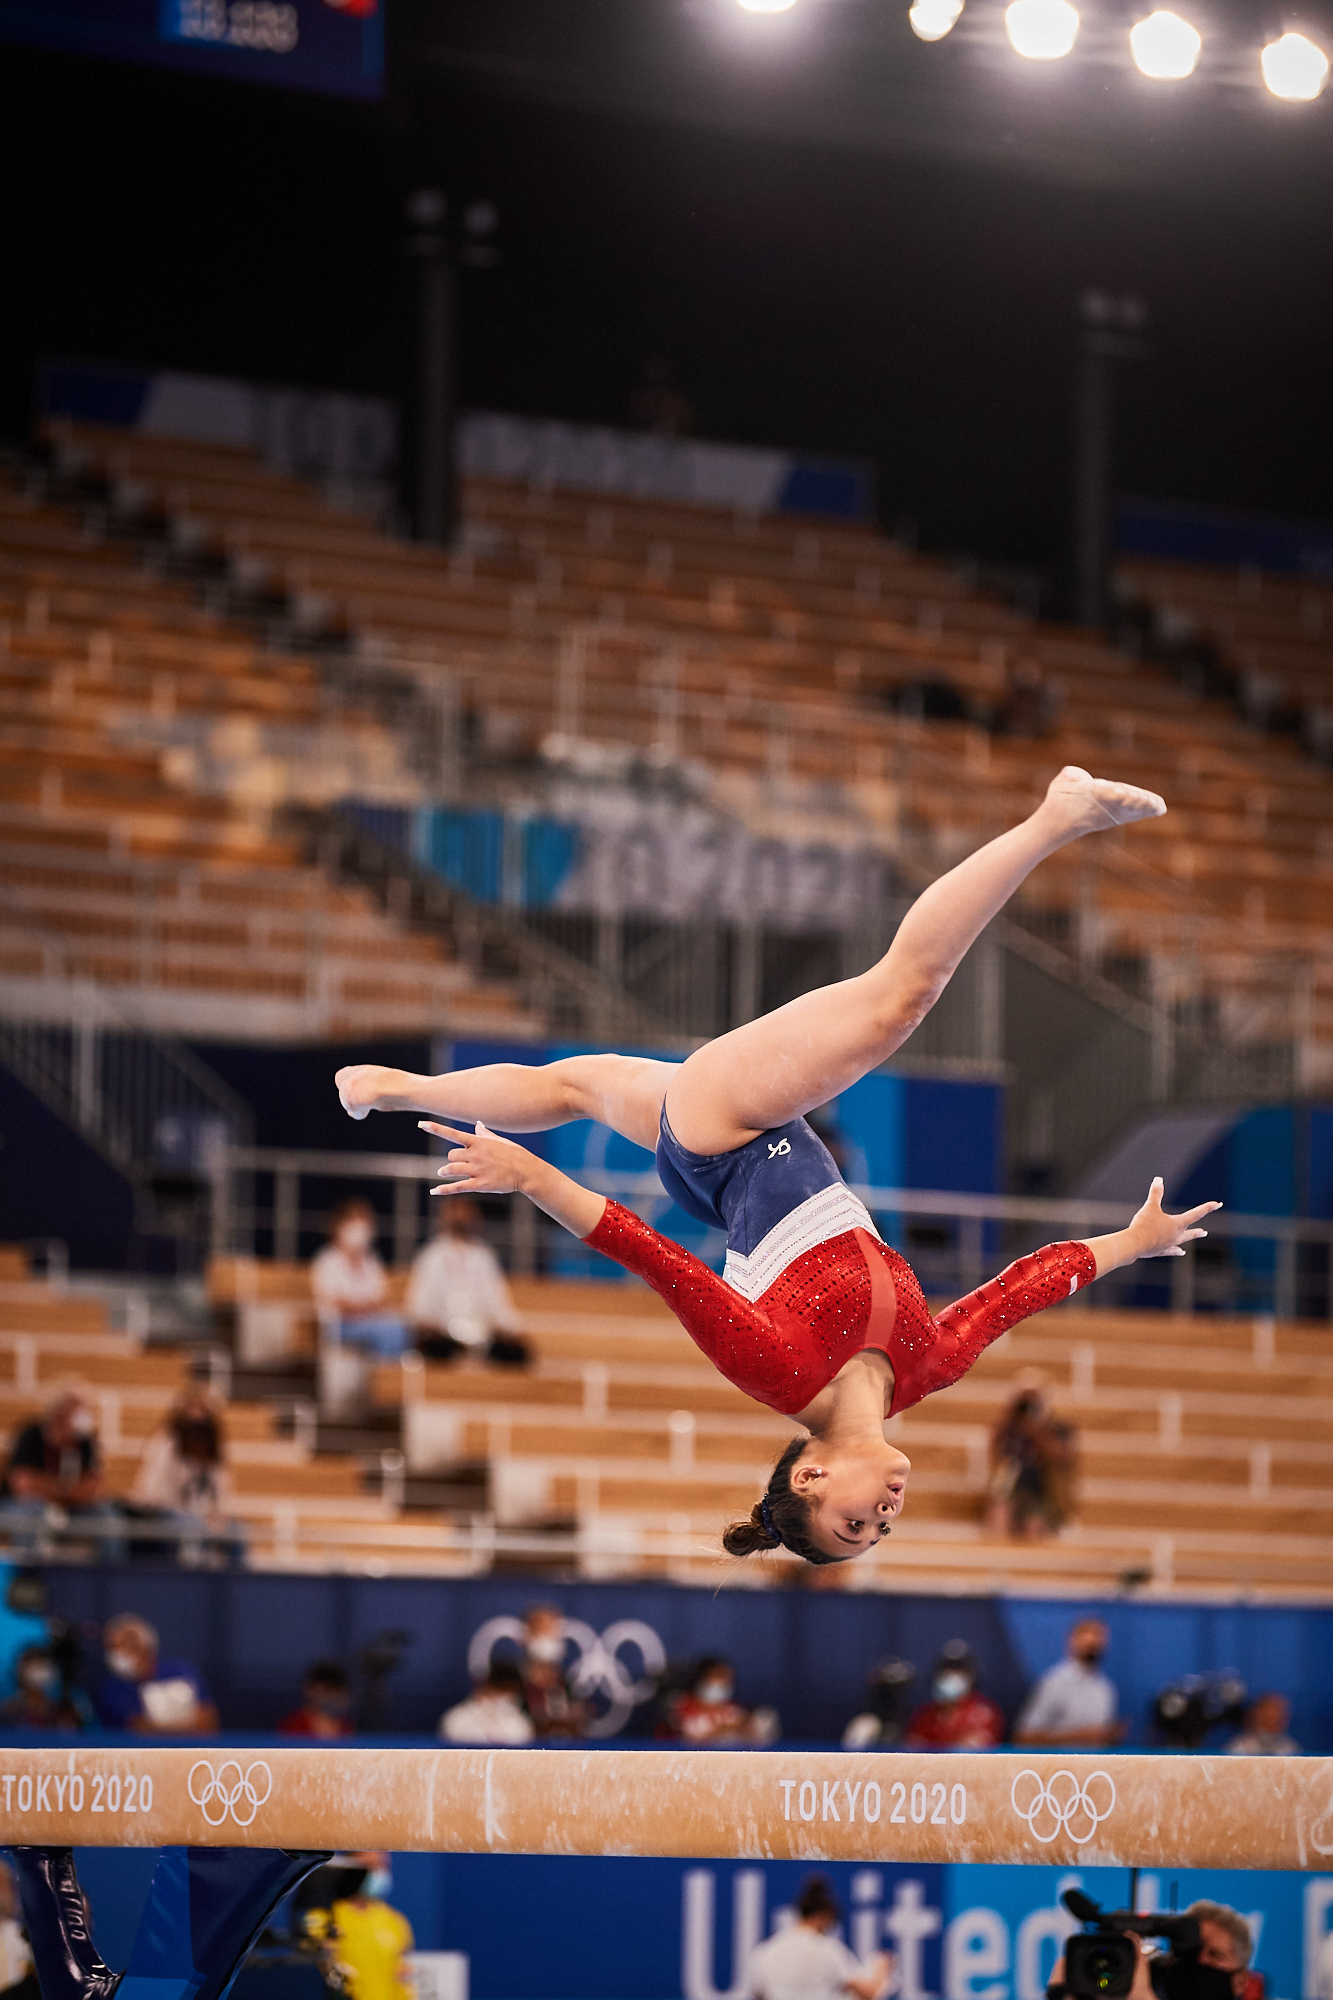 Photo: Team USA's Sunisa Lee, from Saint Paul Minnesota, competes on the balance beam in Rotation 3 of the women's gymnastics team final with a strong performance during the 2020 Tokyo Olympics at Ariake Gymnastics Center in Tokyo, Japan.